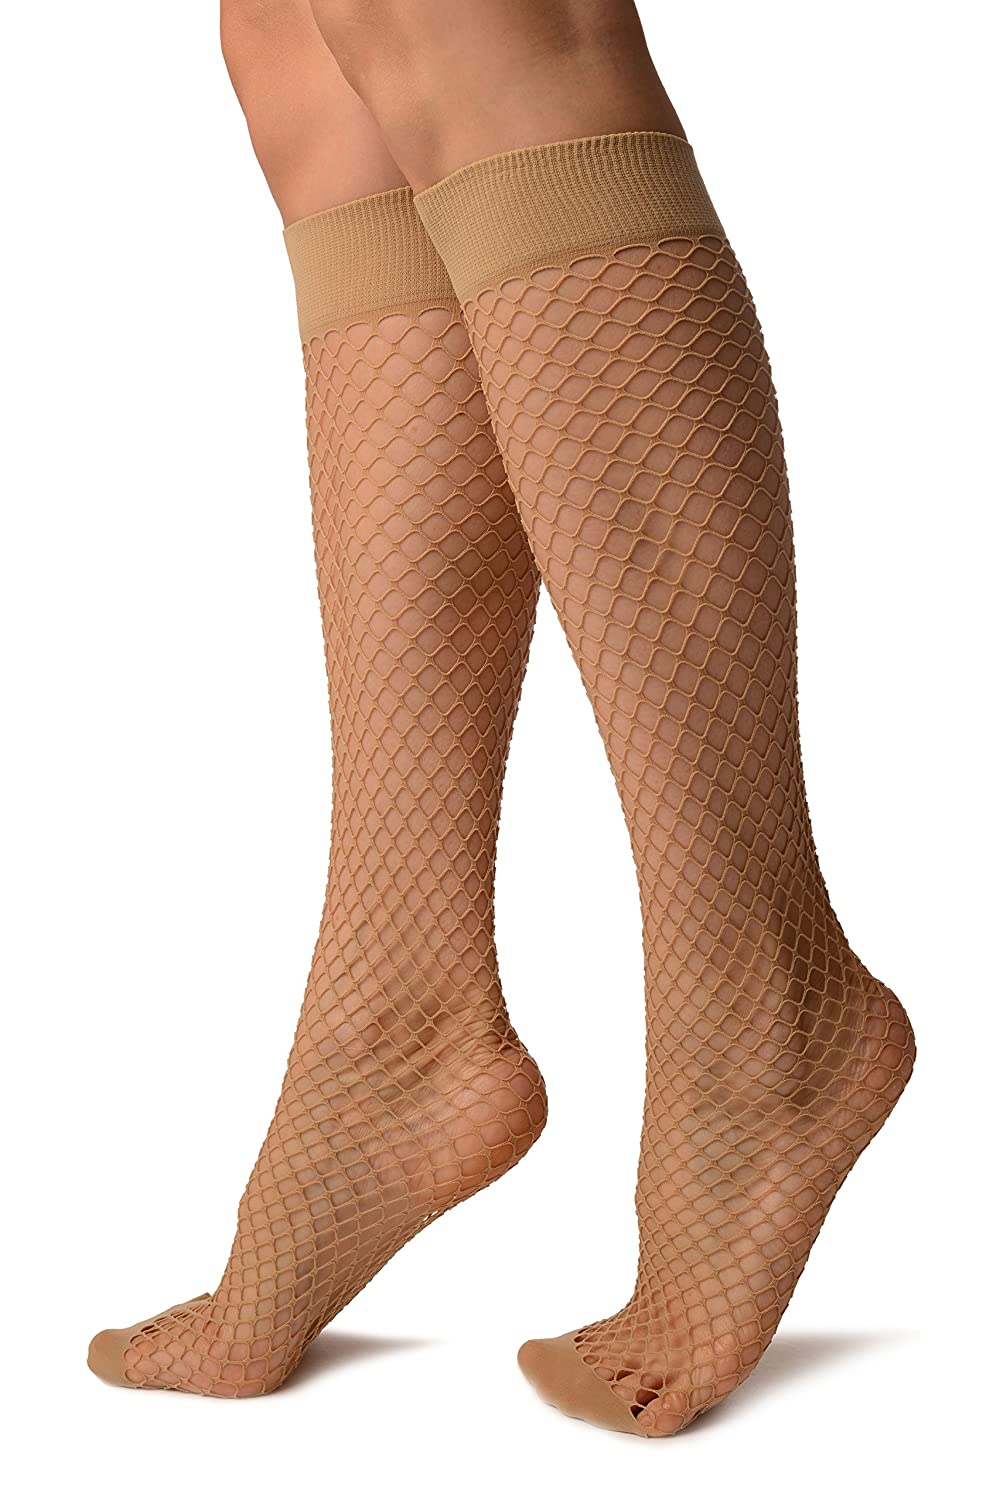 e293ef85540565 Beige Fishnet With Wide Top & Opaque Toe Knee High Socks - Socks at Amazon  Women's Clothing store: